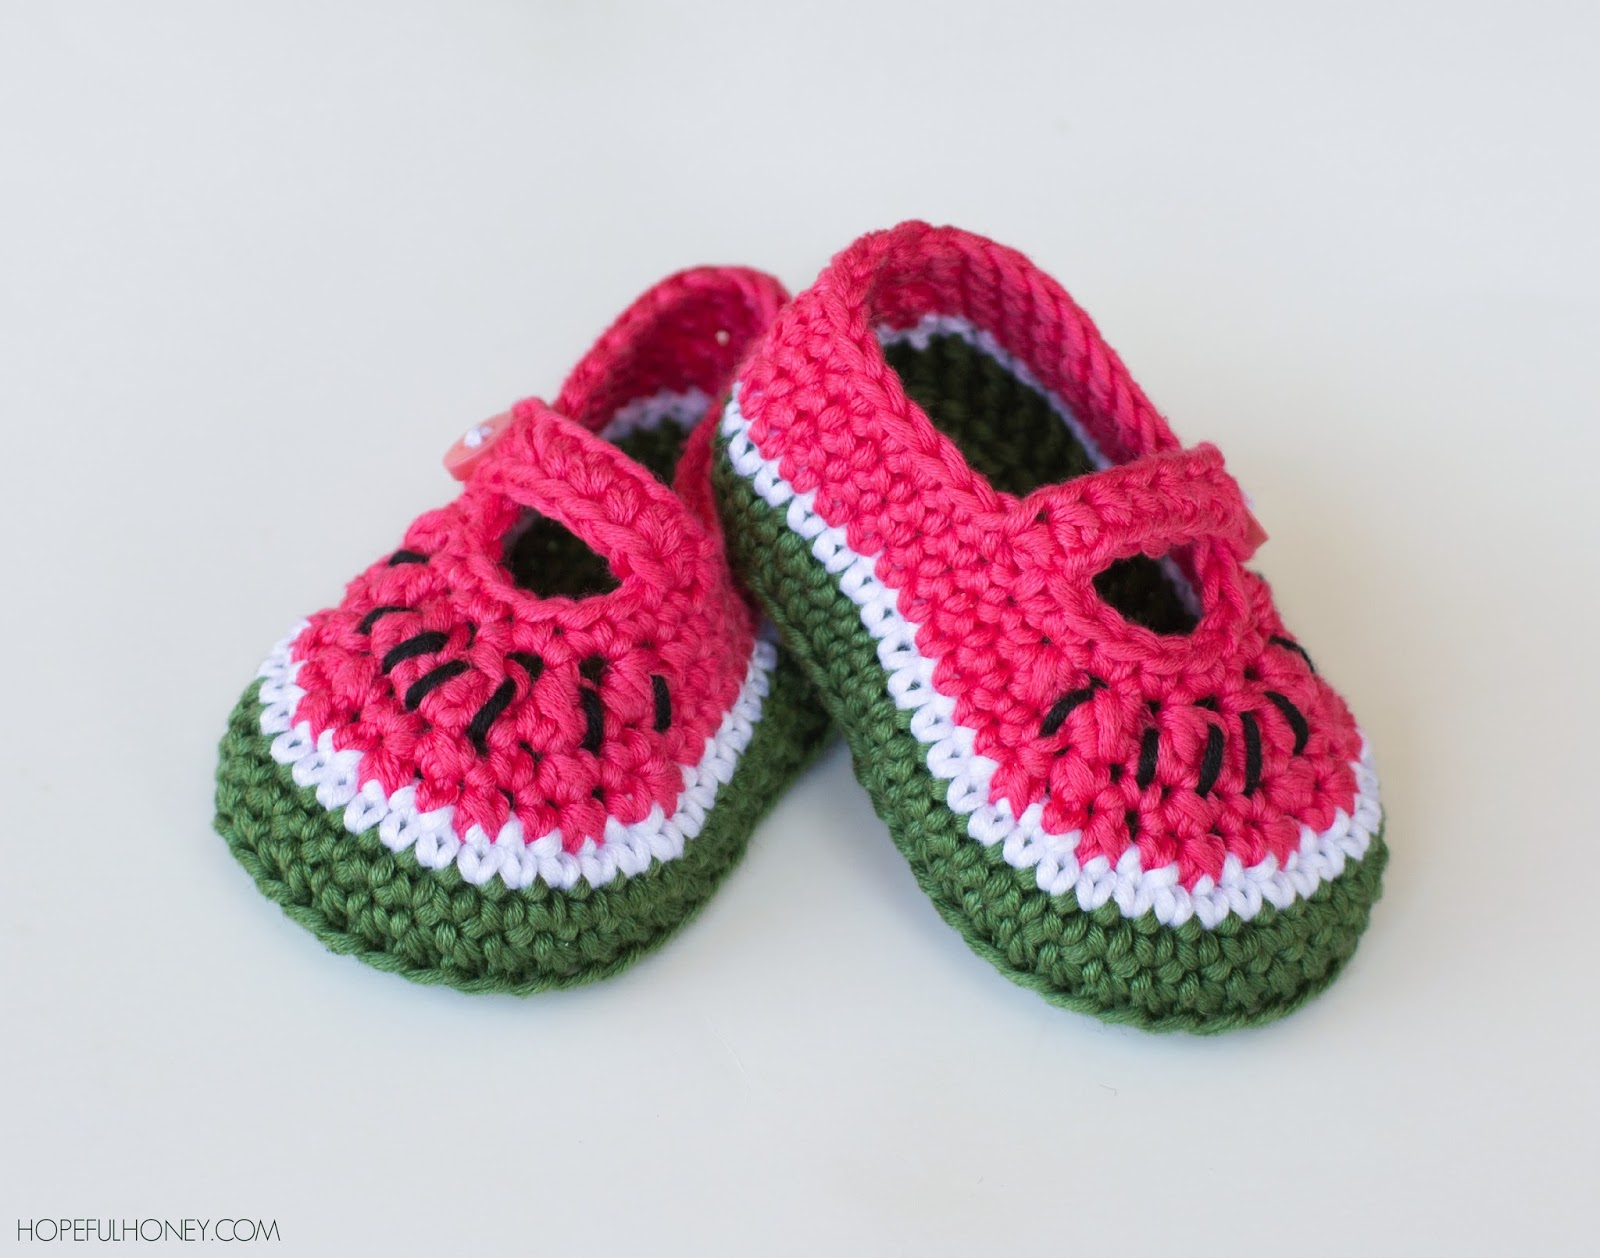 Crochet Baby Booties Pattern With Pictures : Hopeful Honey Craft, Crochet, Create: Watermelon Baby ...